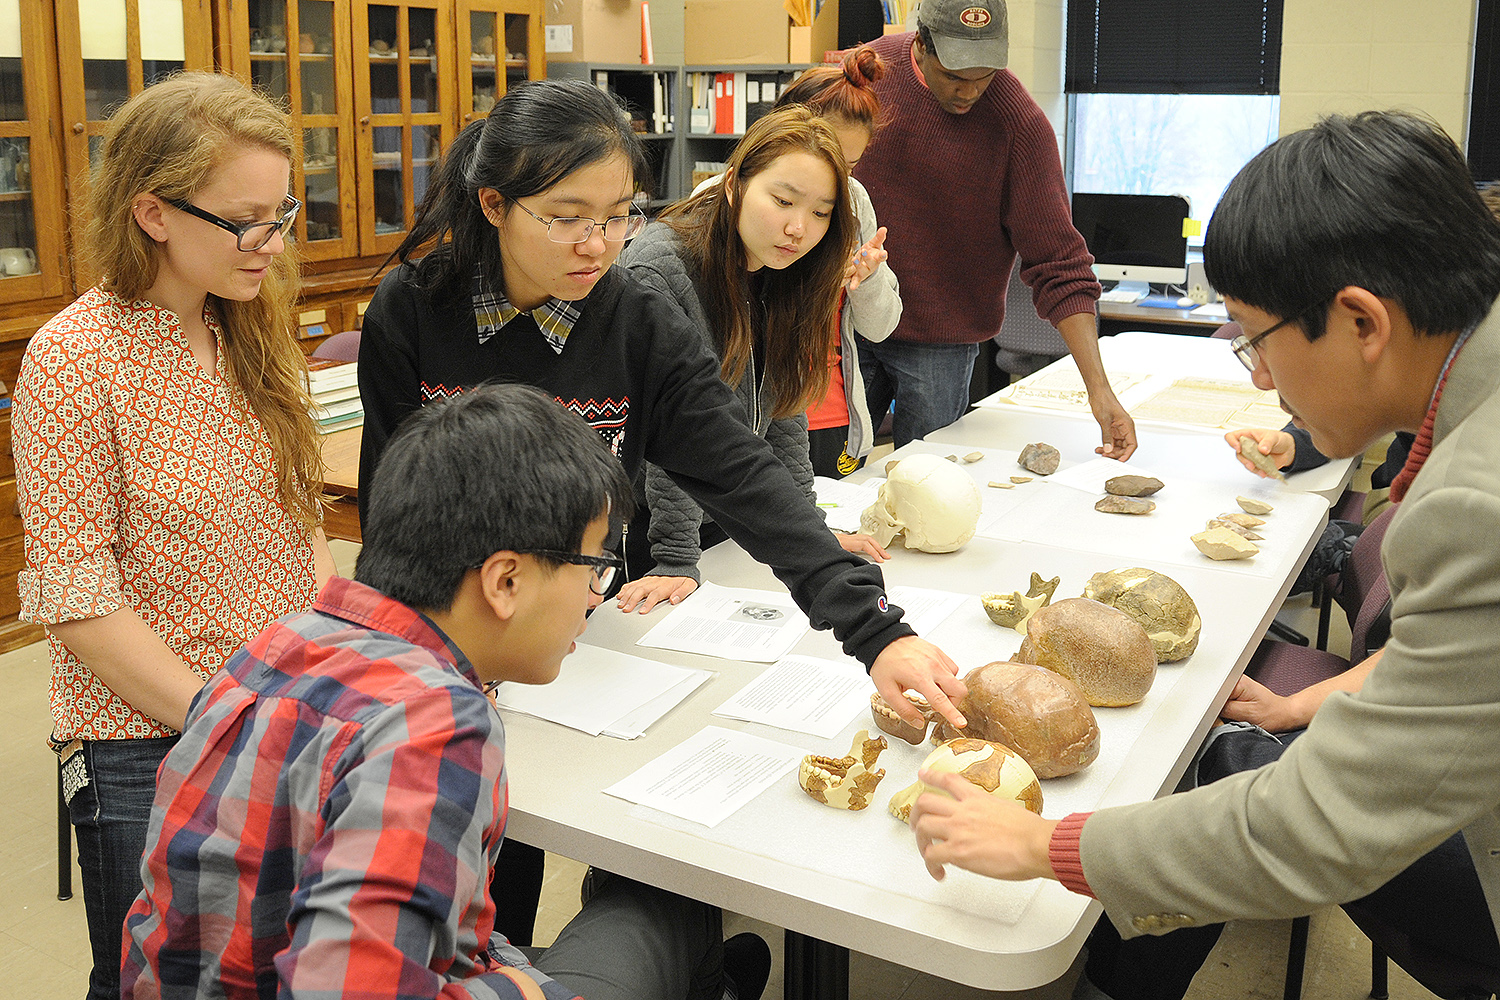 At right, Ying Jia Tan, assistant professor of history, taught his class, History of Science and Technology in Modern China, in Wesleyan's Anthropology and Archaeology Collections.